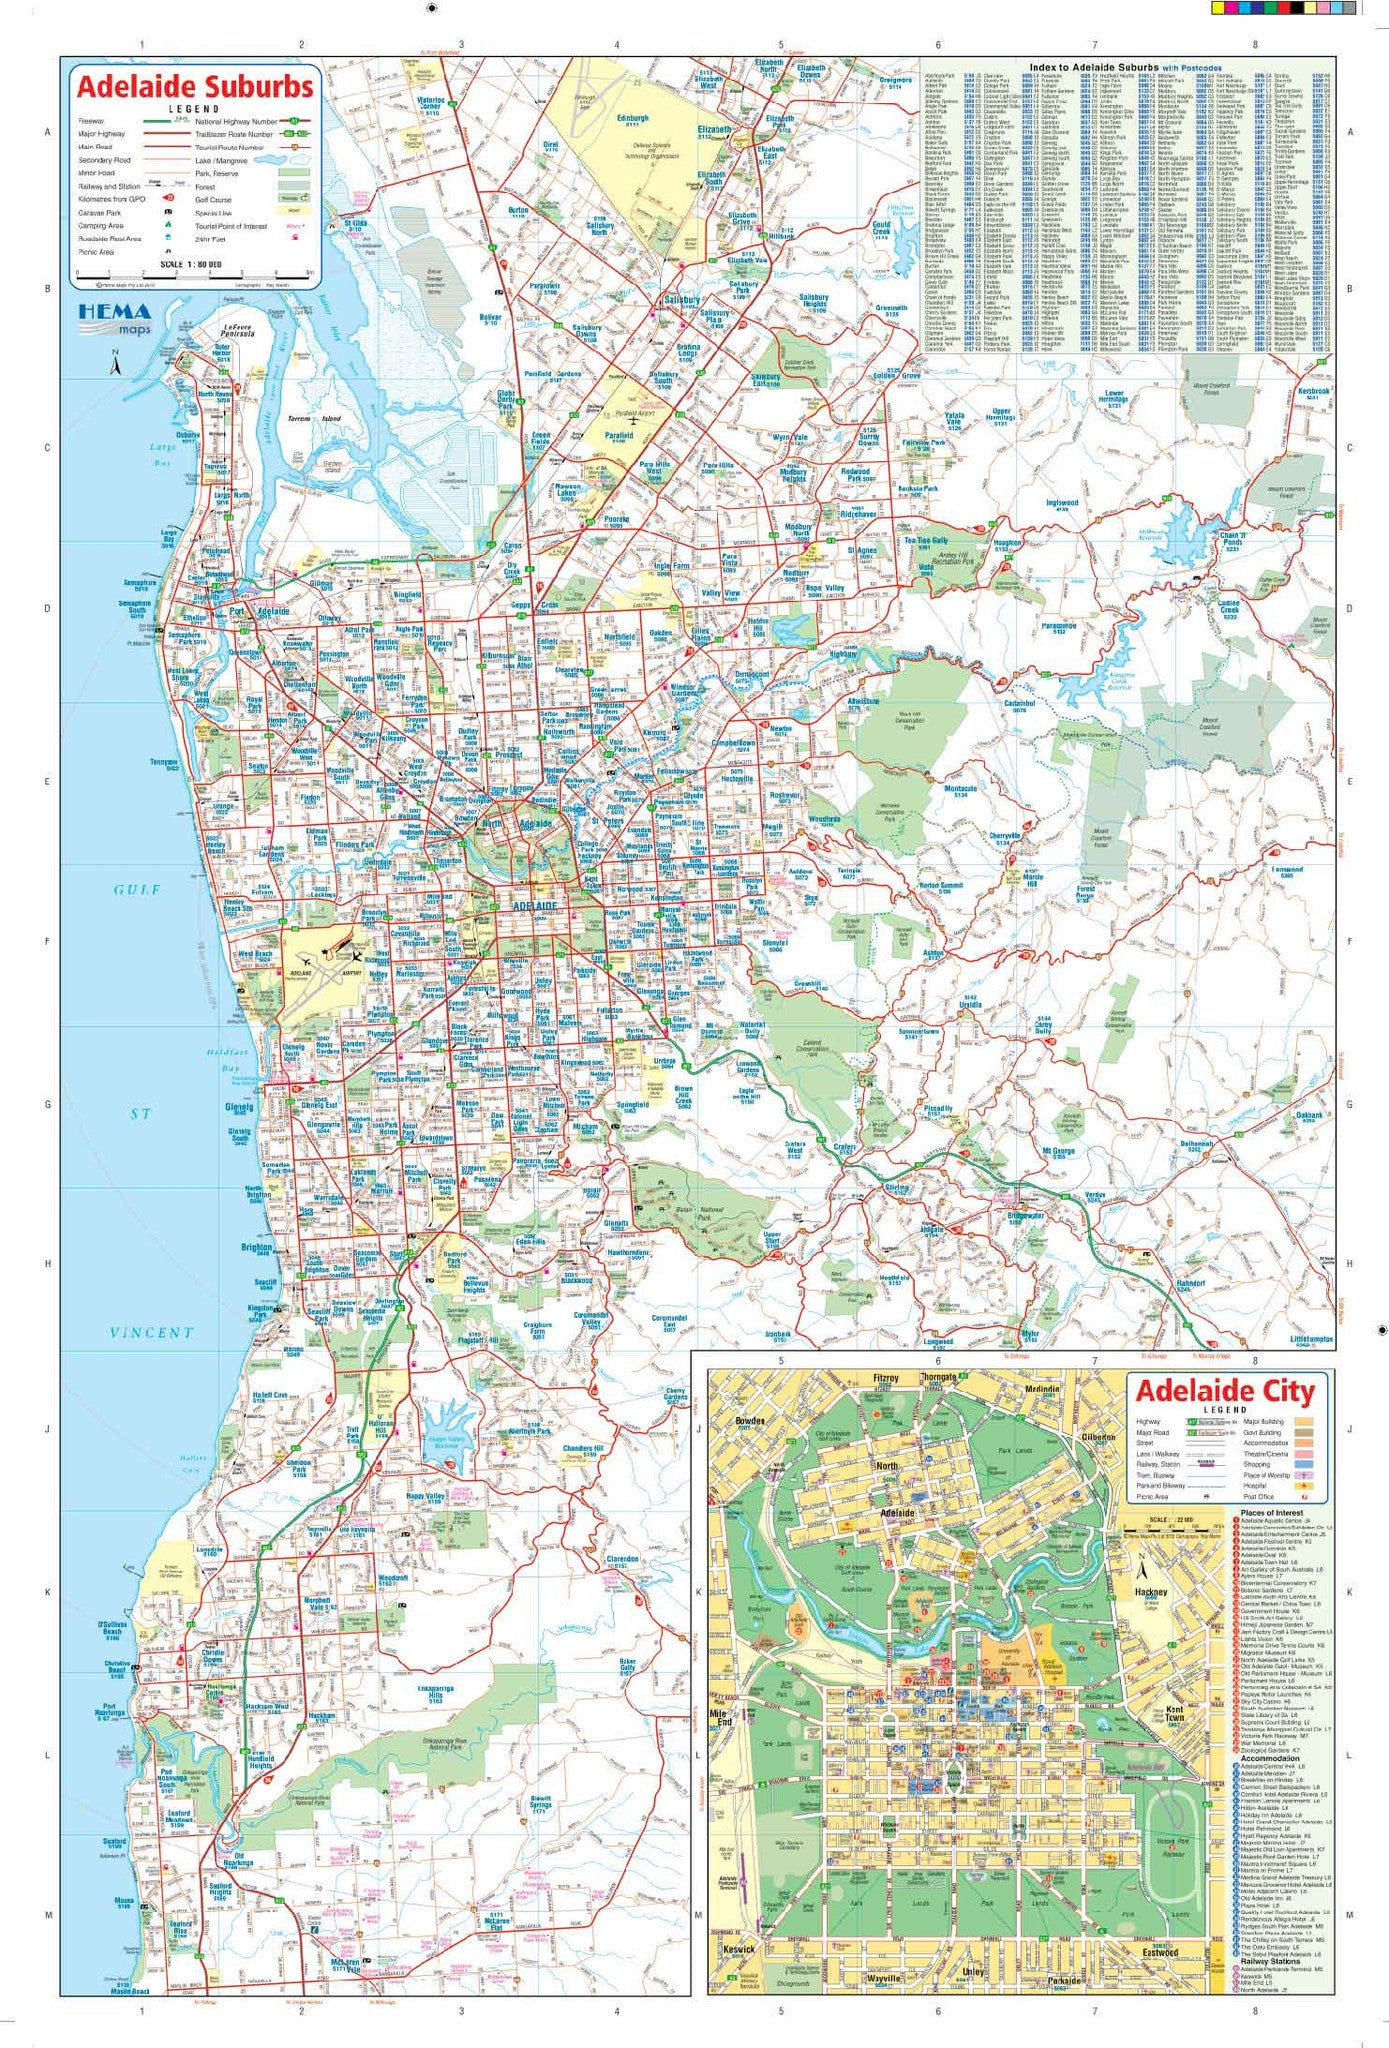 Businessmapsaustralia Map of Adelaide City containing detailed